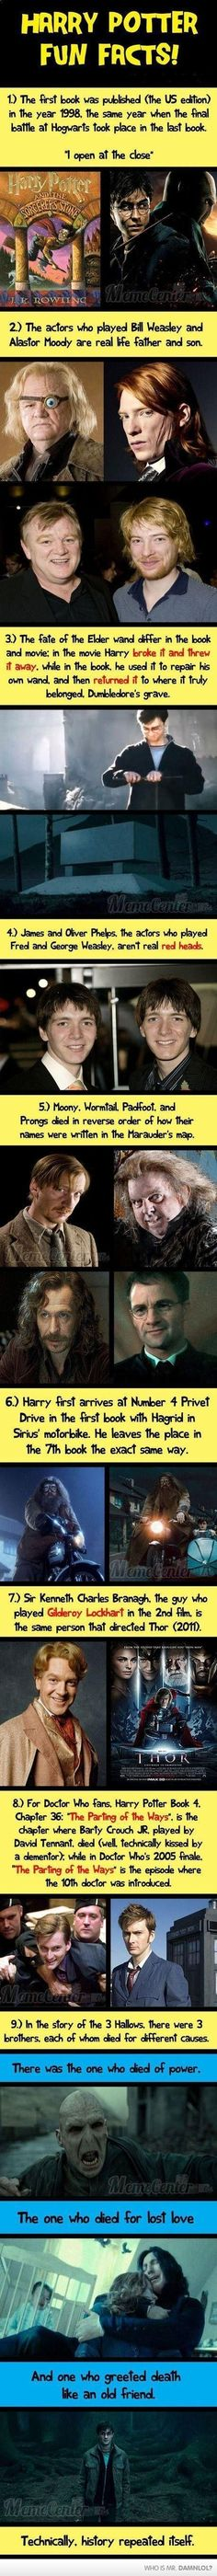 Funny pictures about Harry Potter facts. Oh, and cool pics about Harry Potter facts. Also, Harry Potter facts. Ridiculous Harry Potter, Harry Potter Fun Facts, Potter Facts, Harry Potter Love, Harry Potter Fandom, Harry Potter Memes, Hogwarts, Slytherin, Must Be A Weasley